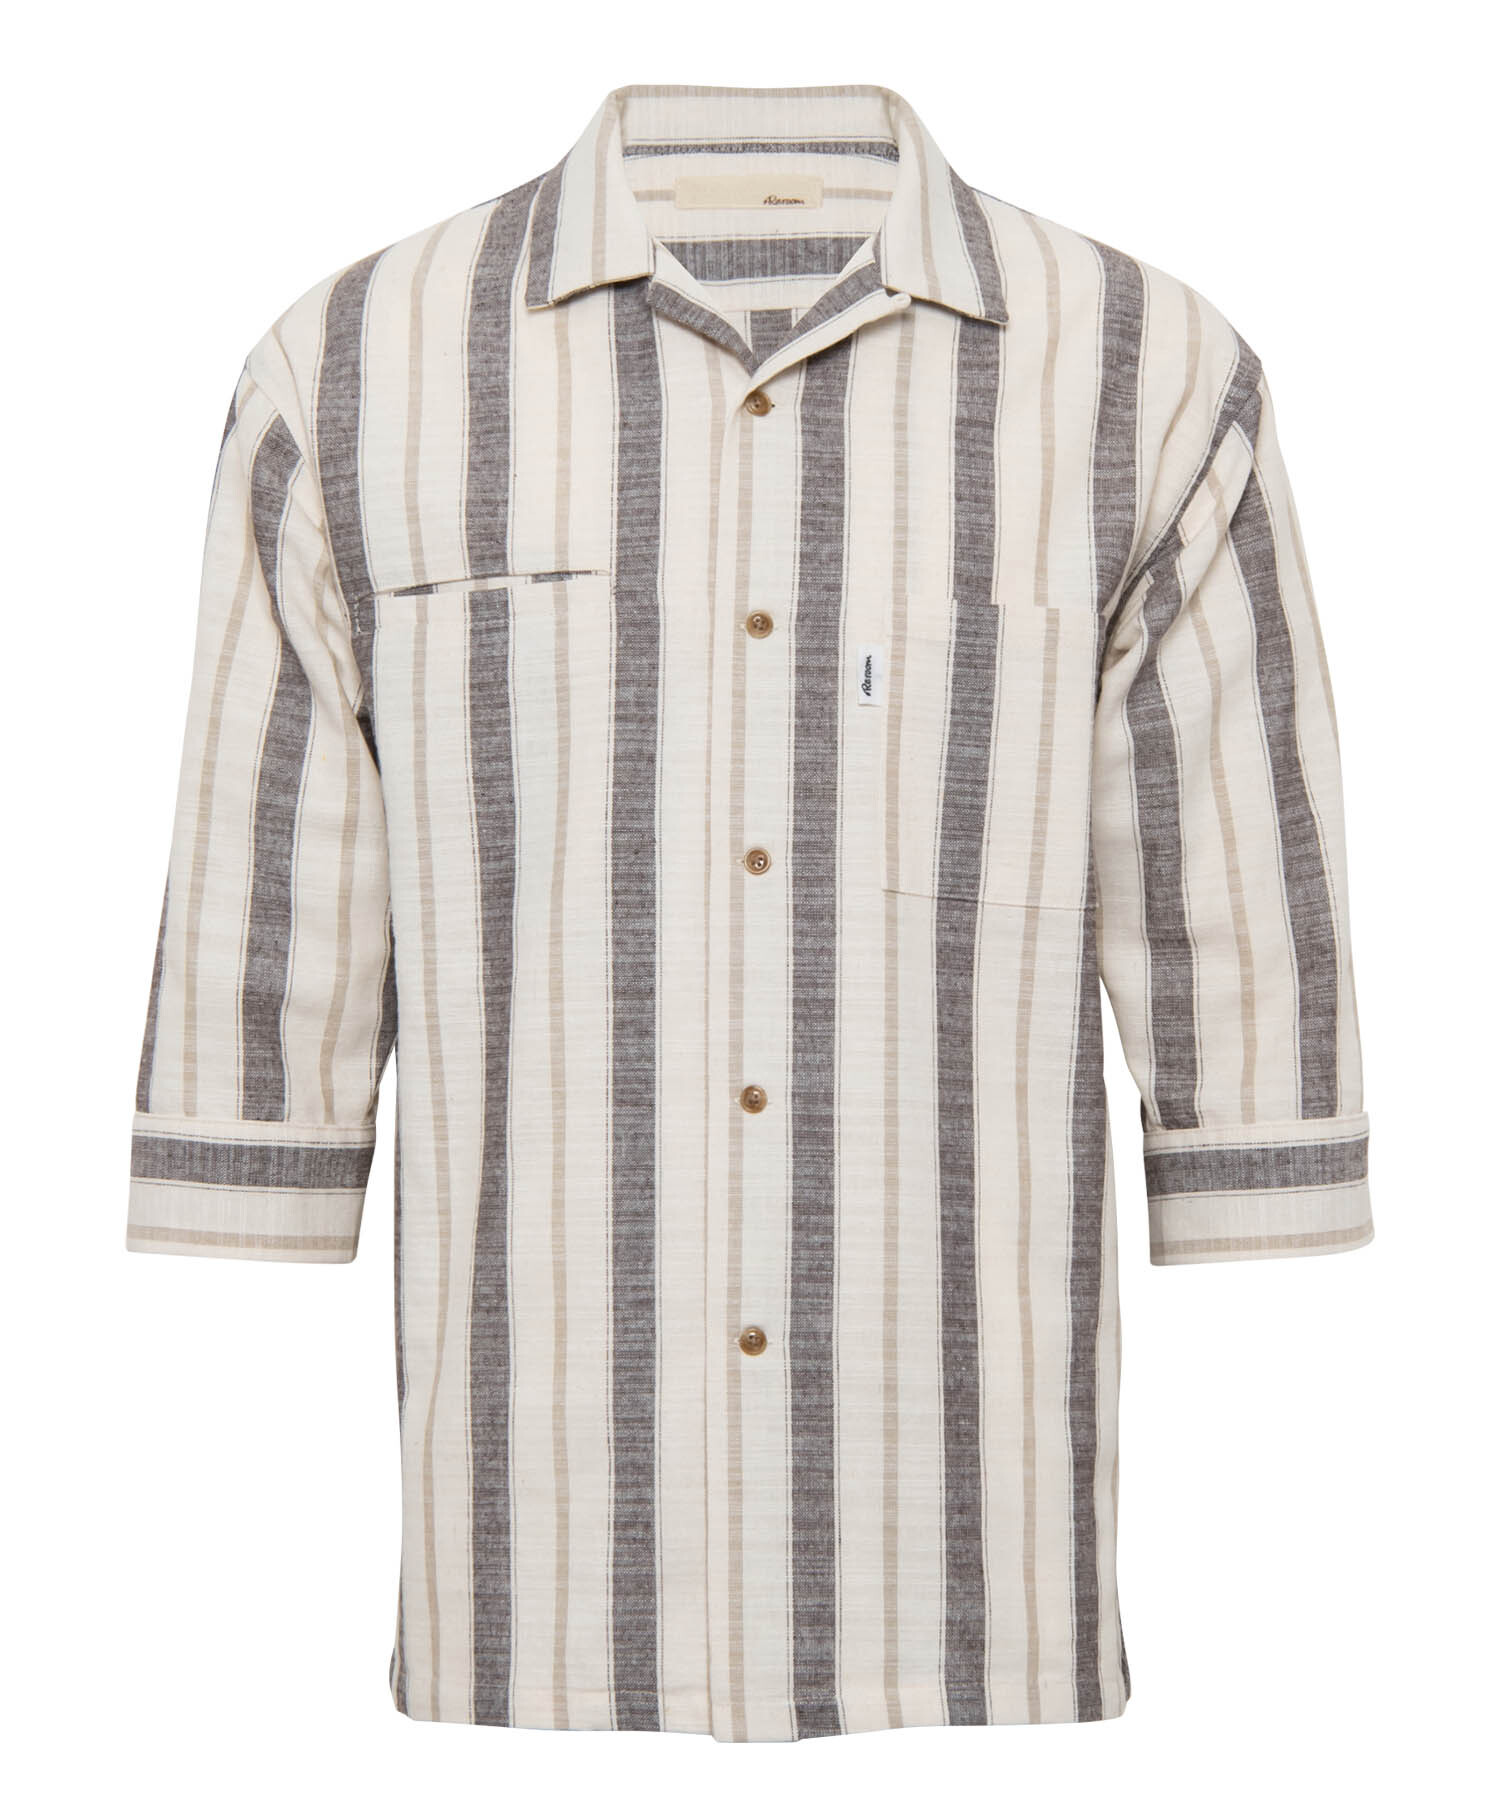 MULTI STRIPE COTTON OPEN COLLAR SHIRTS[RES053]